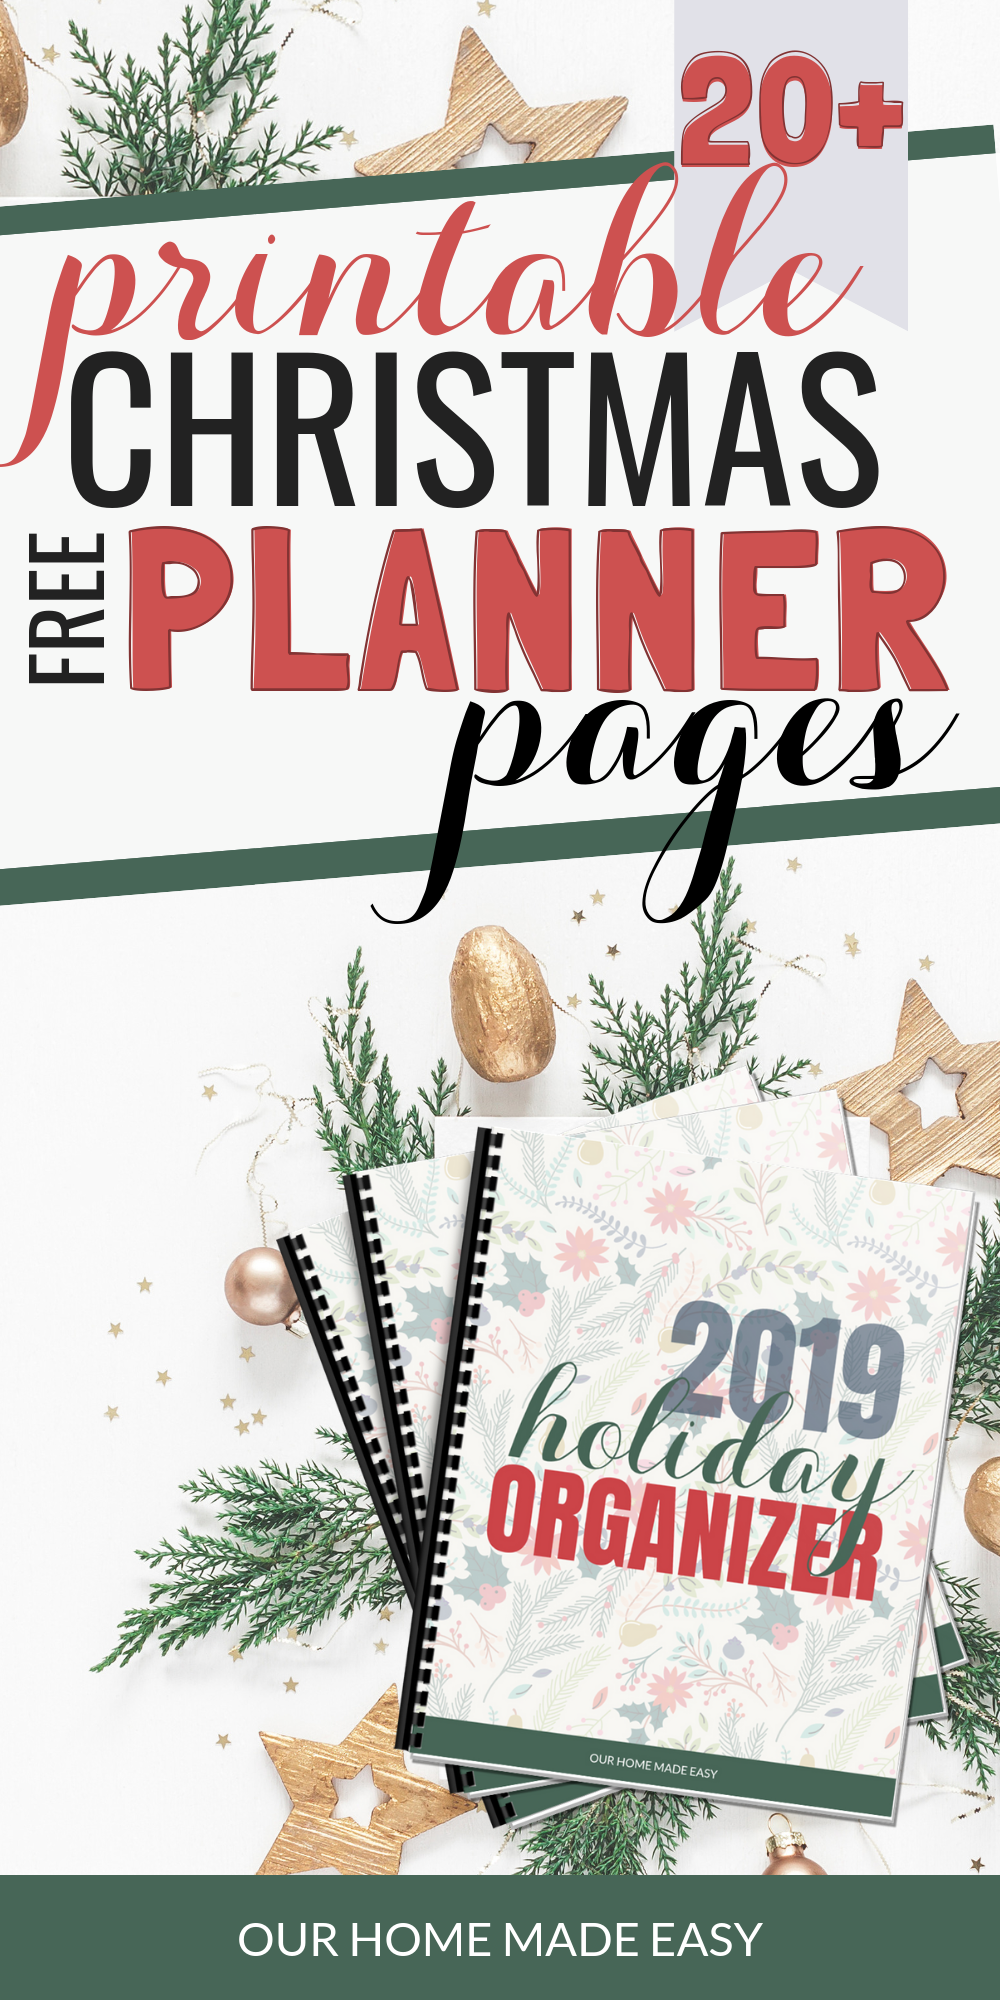 Download all the pages for your Printable Christmas planner right here!